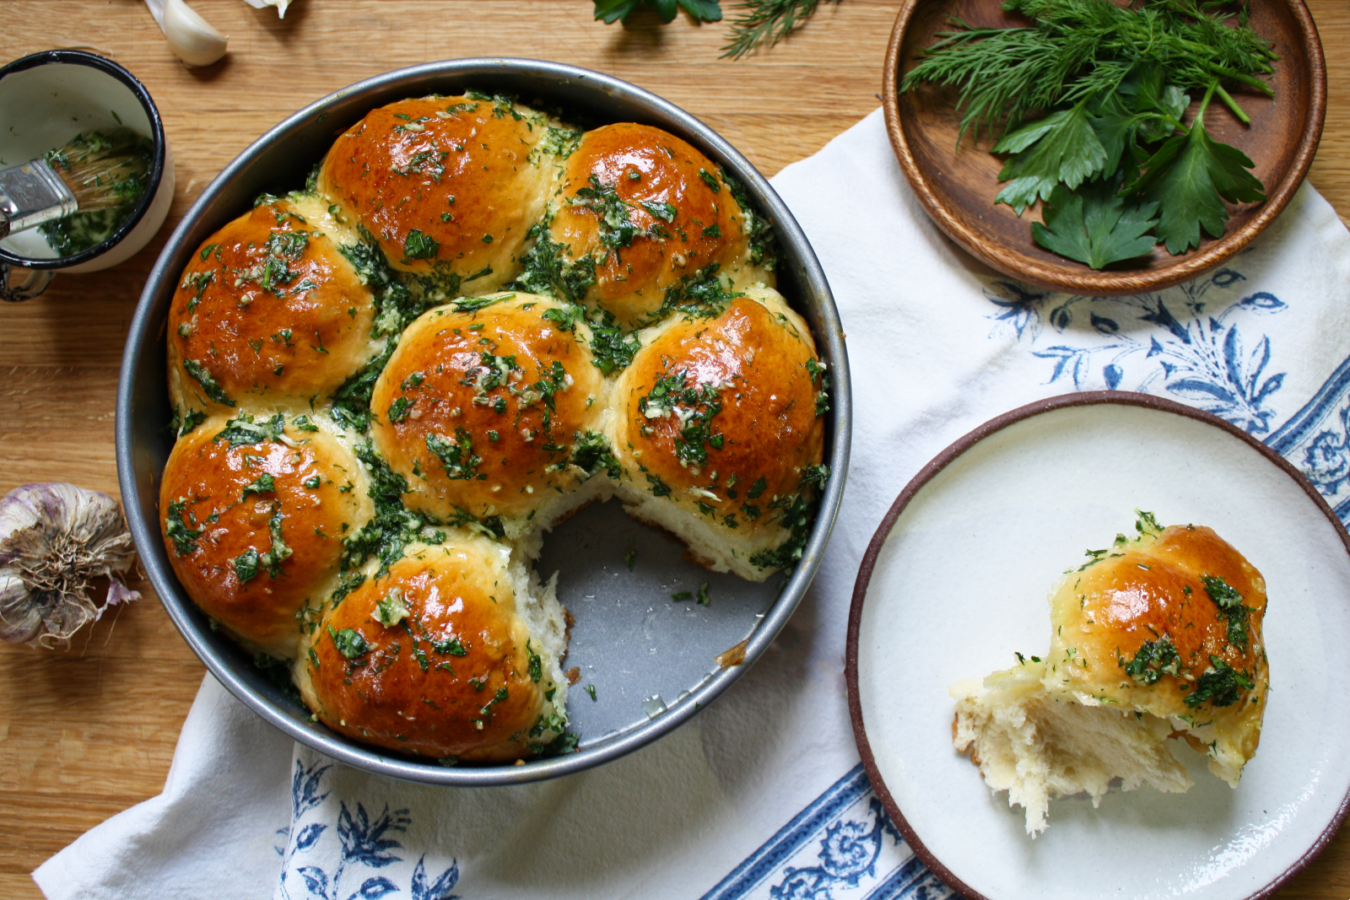 How to make pampushky, the Ukrainian garlic bread rolls that dreams are made of